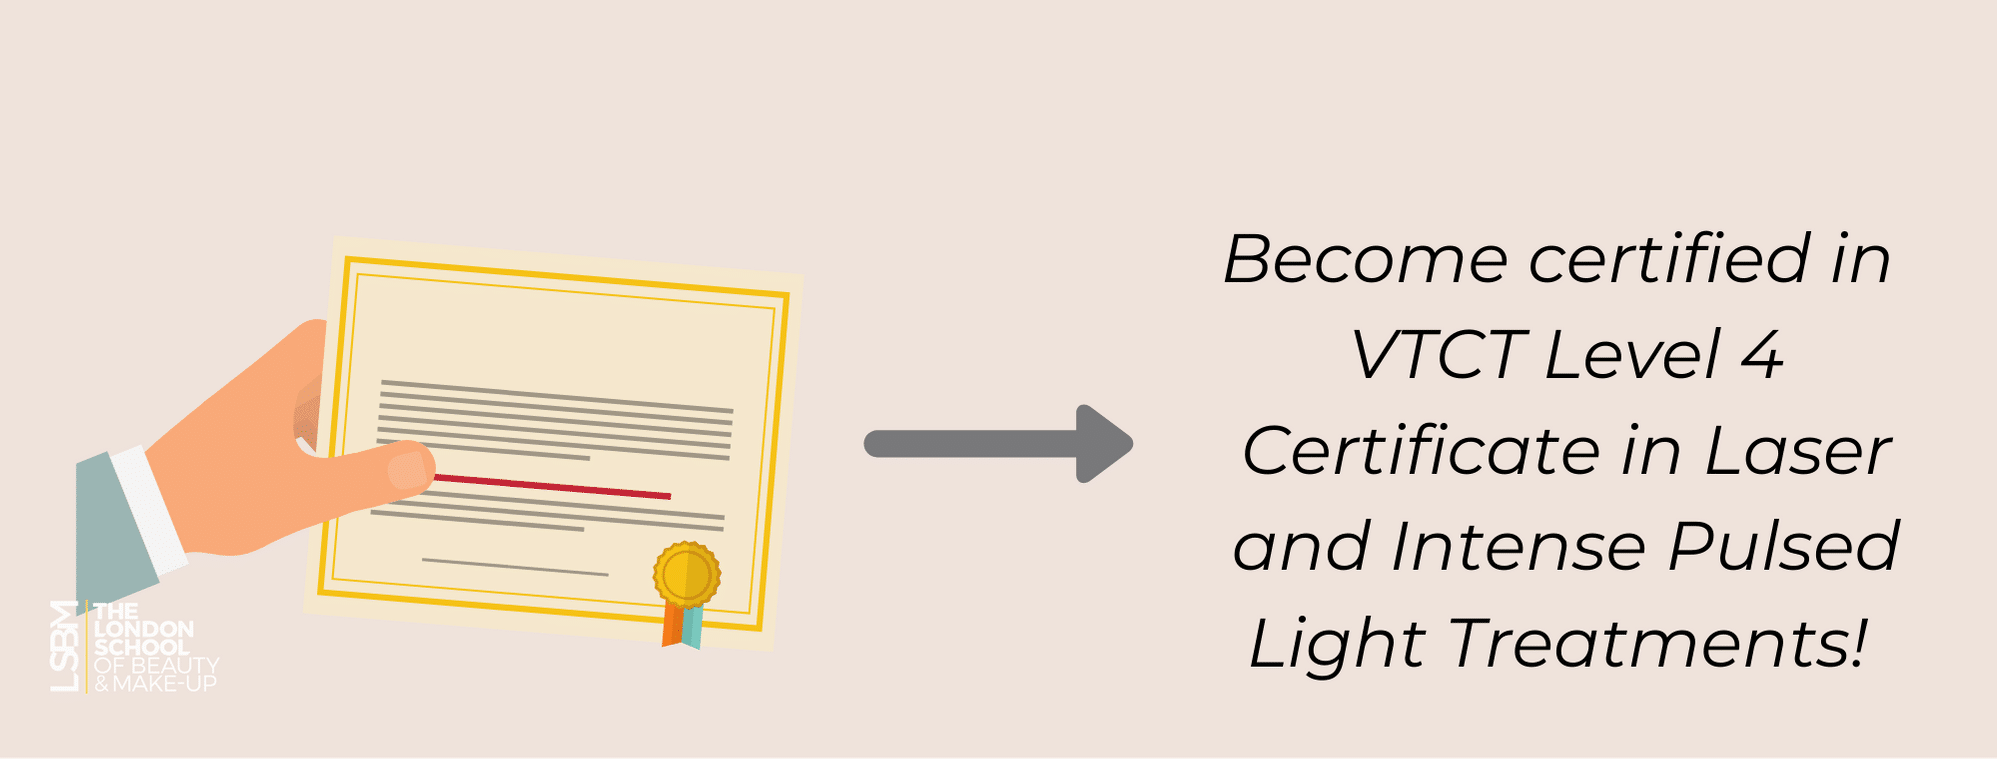 How to become a certified laser technician 3